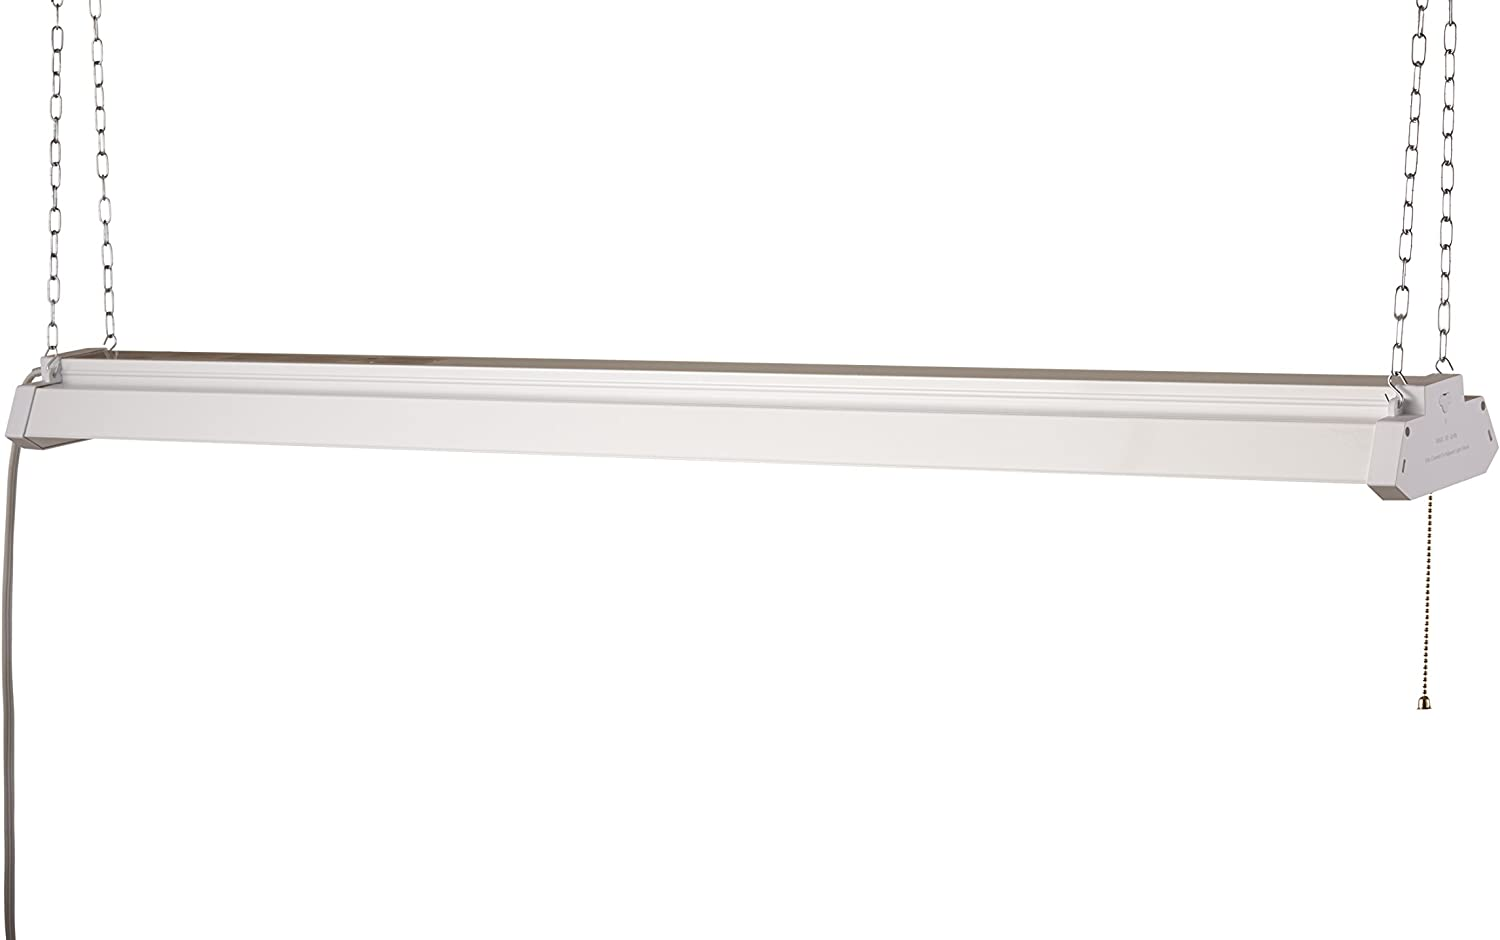 ProLight 111513 Industrial 4-Foot LED Shop Link Units to Sales of SALE items from new works 10 High quality Up